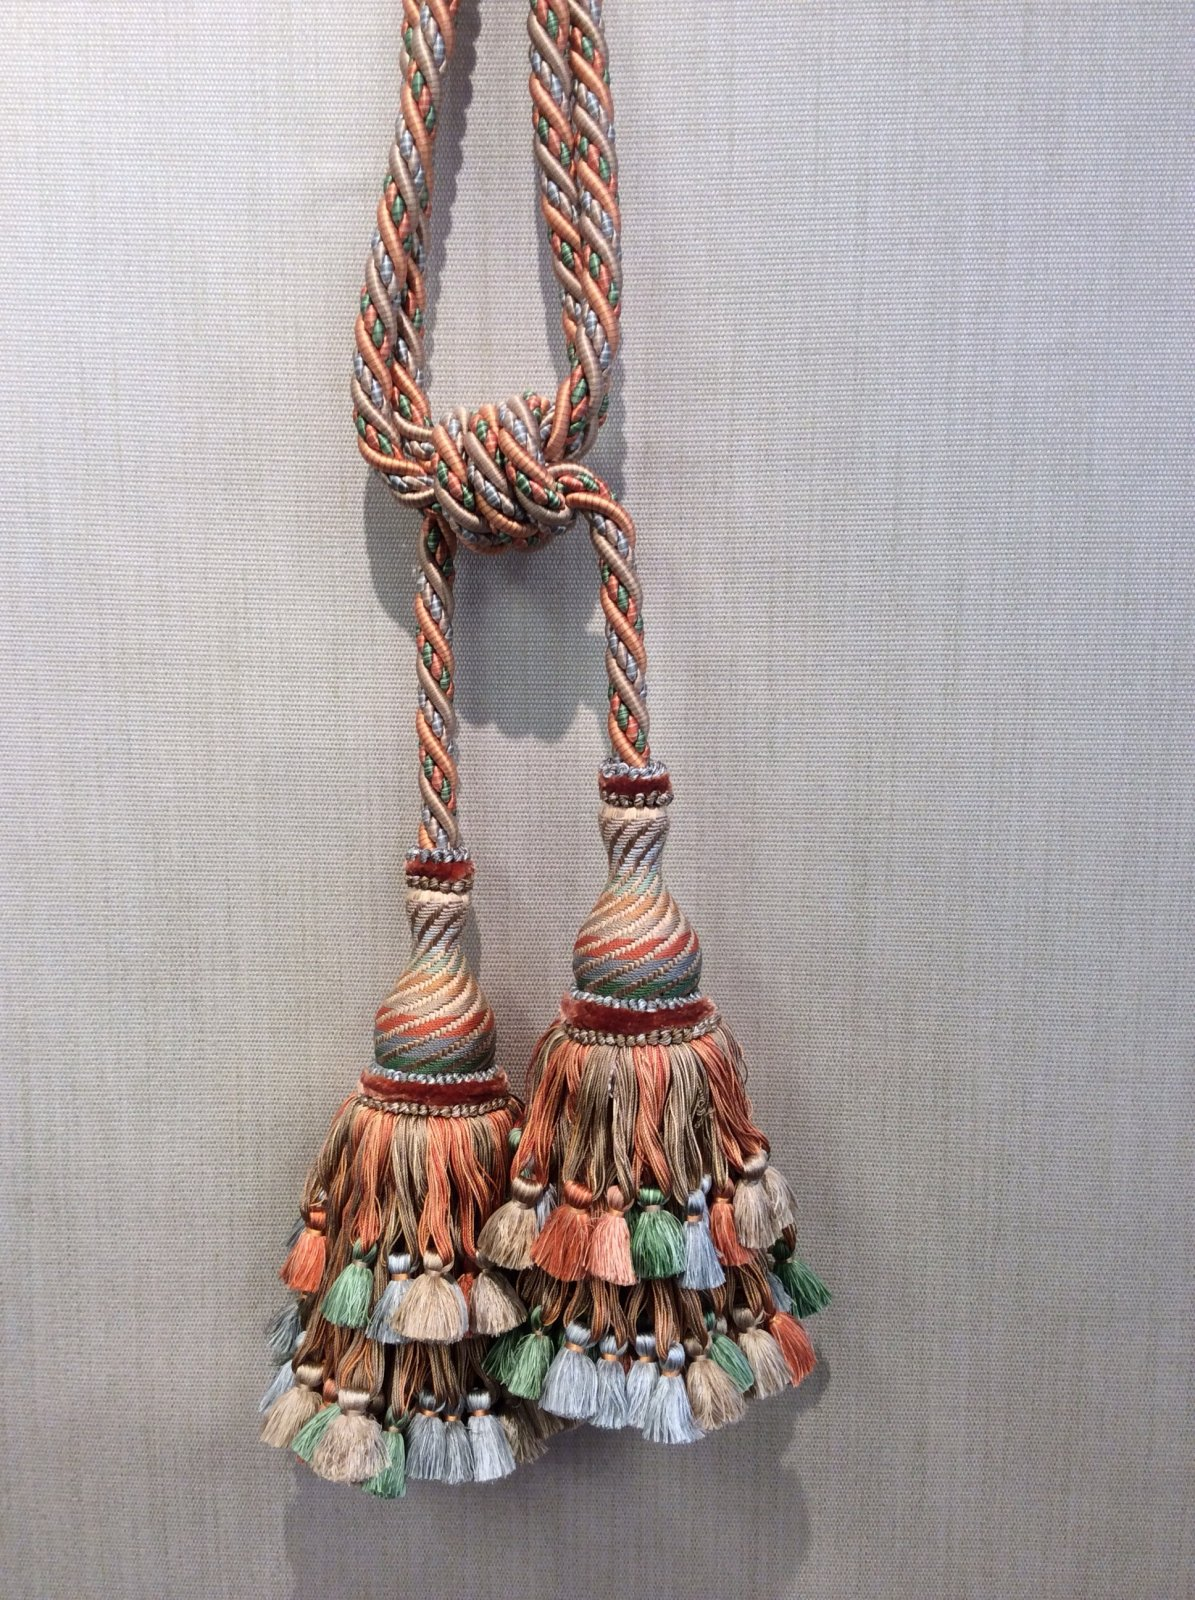 DeClercq Paris France Hand Made Luxury Tassel Il Palio Embrasse Clarence House CHDC755